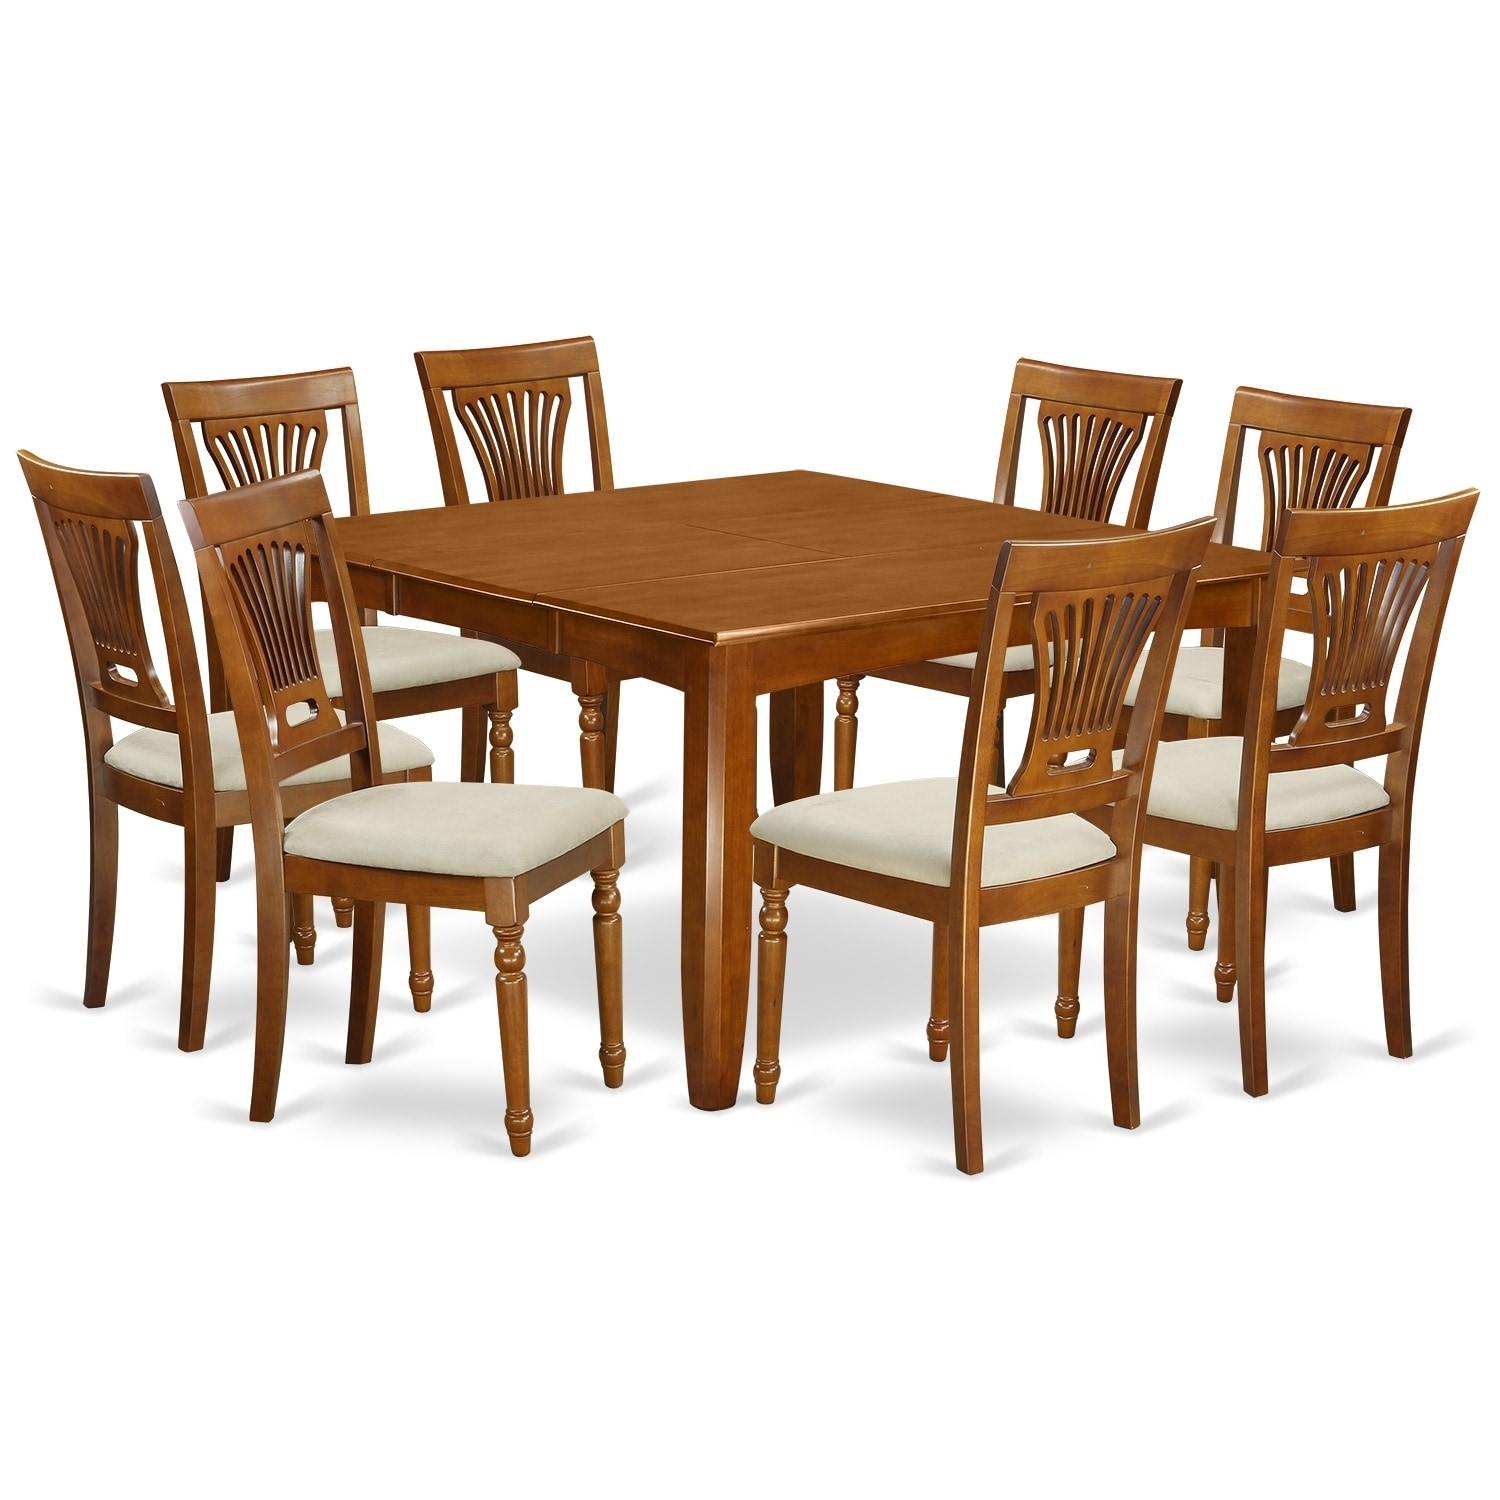 PFPL9-SBR 9 Pc Dining set-Table with Leaf and 8 Kitchen C...